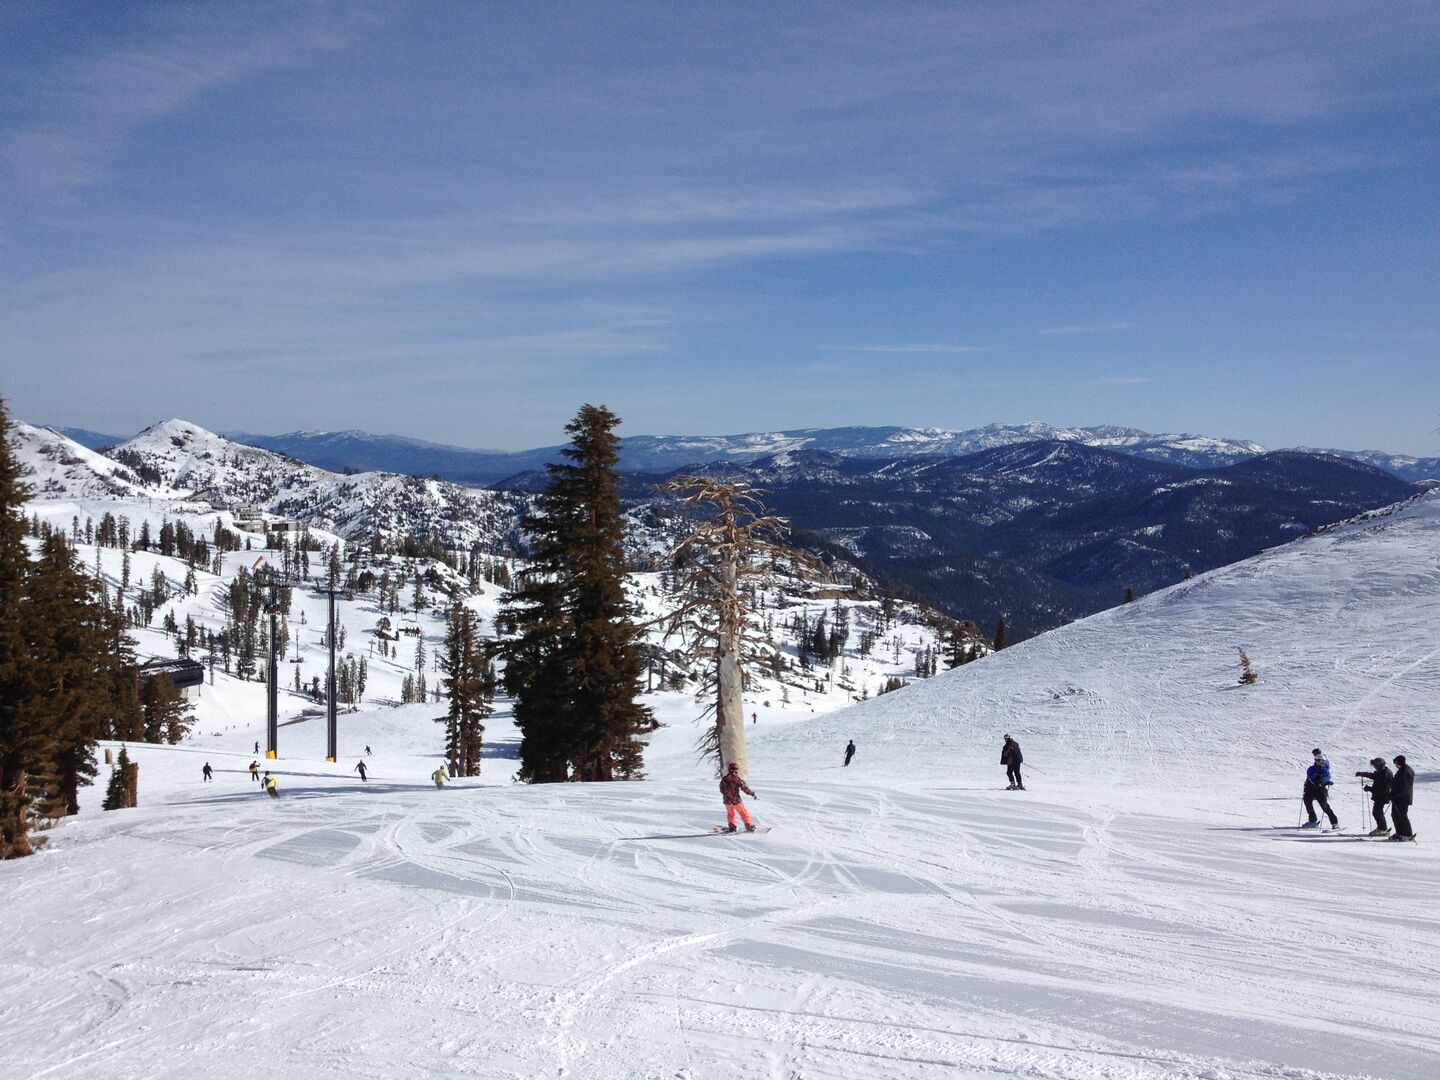 Squaw valley skiing